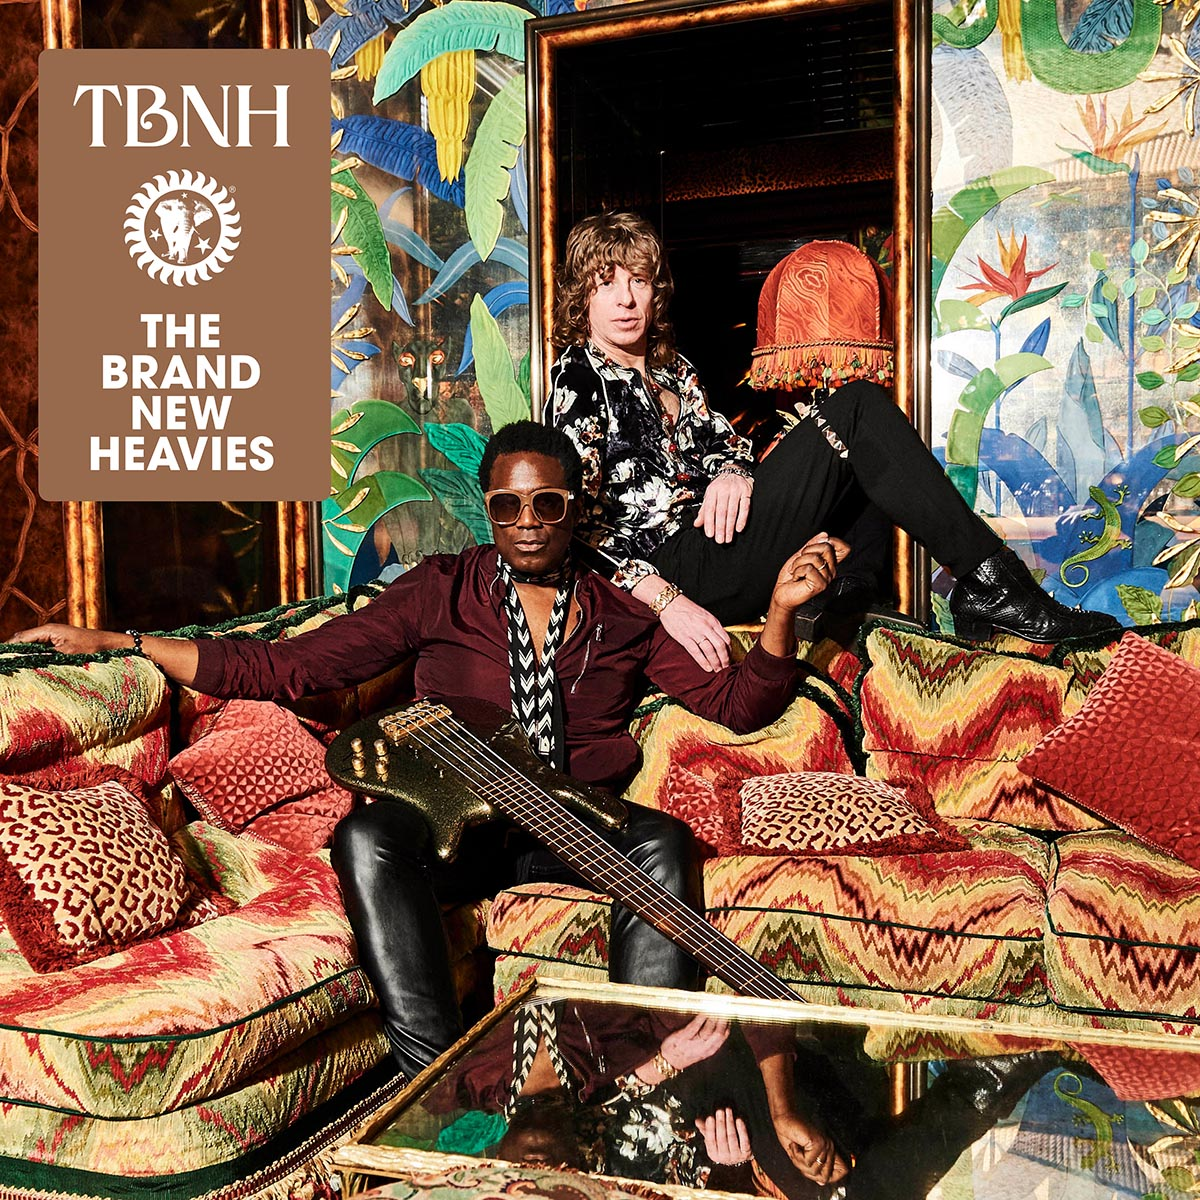 the brand new heavies tbnh cover